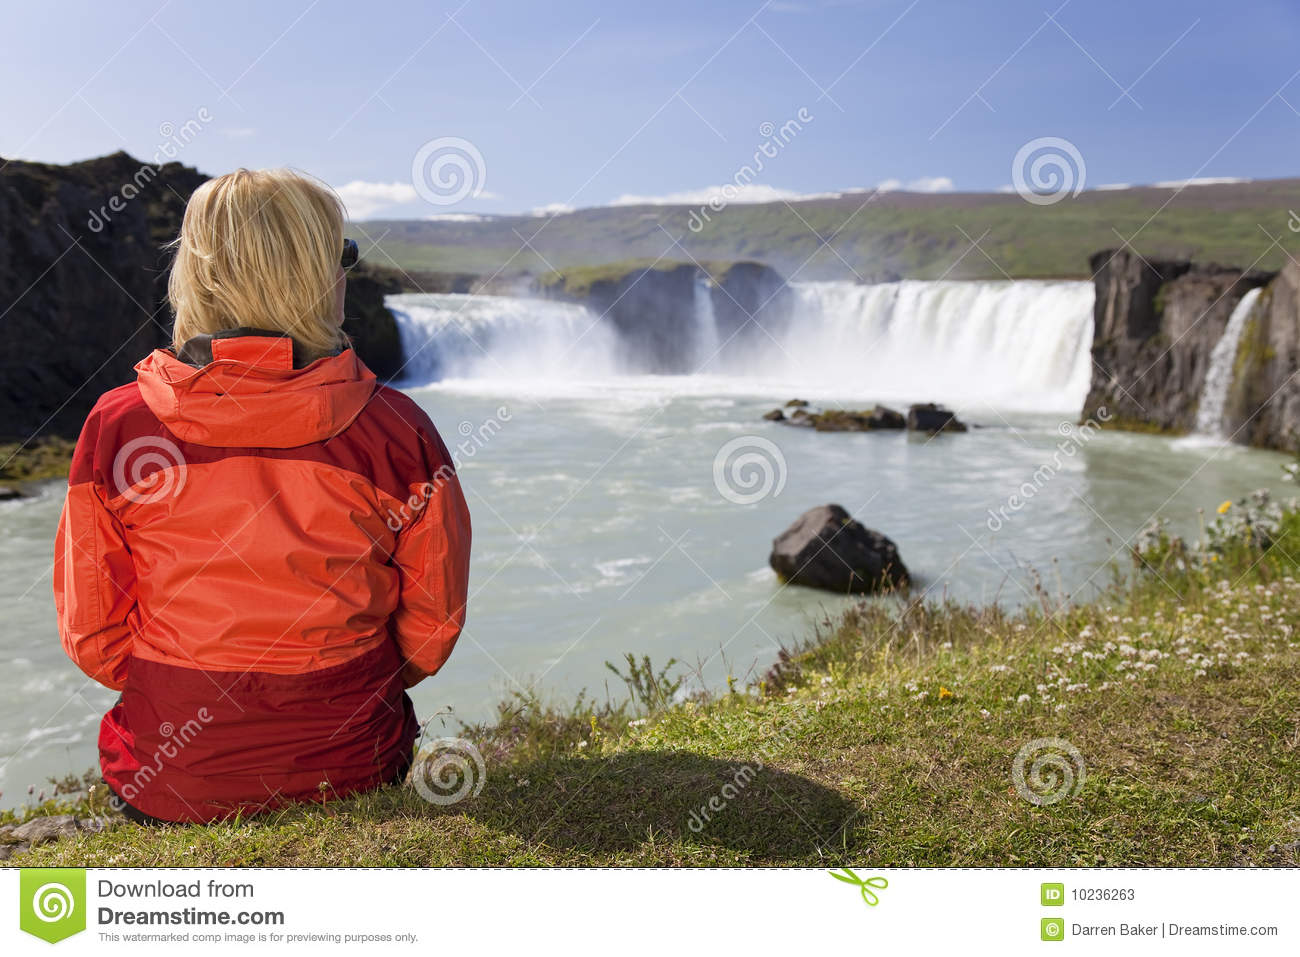 Woman Sitting on Rock While Staring on Waterfall · Free